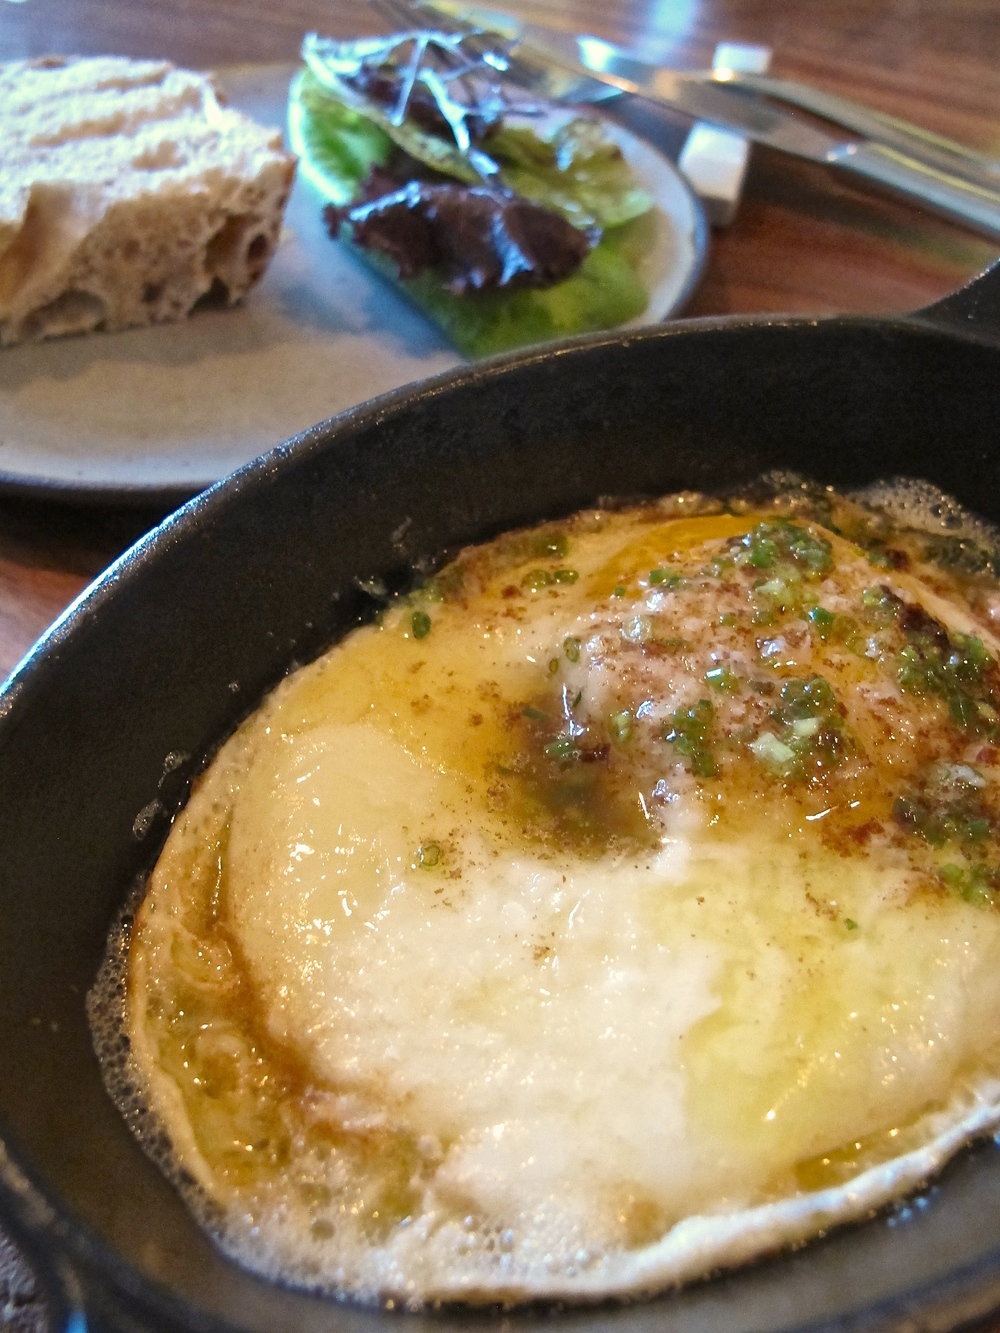 Gary Menes' Le Comptoir egg in brown butter